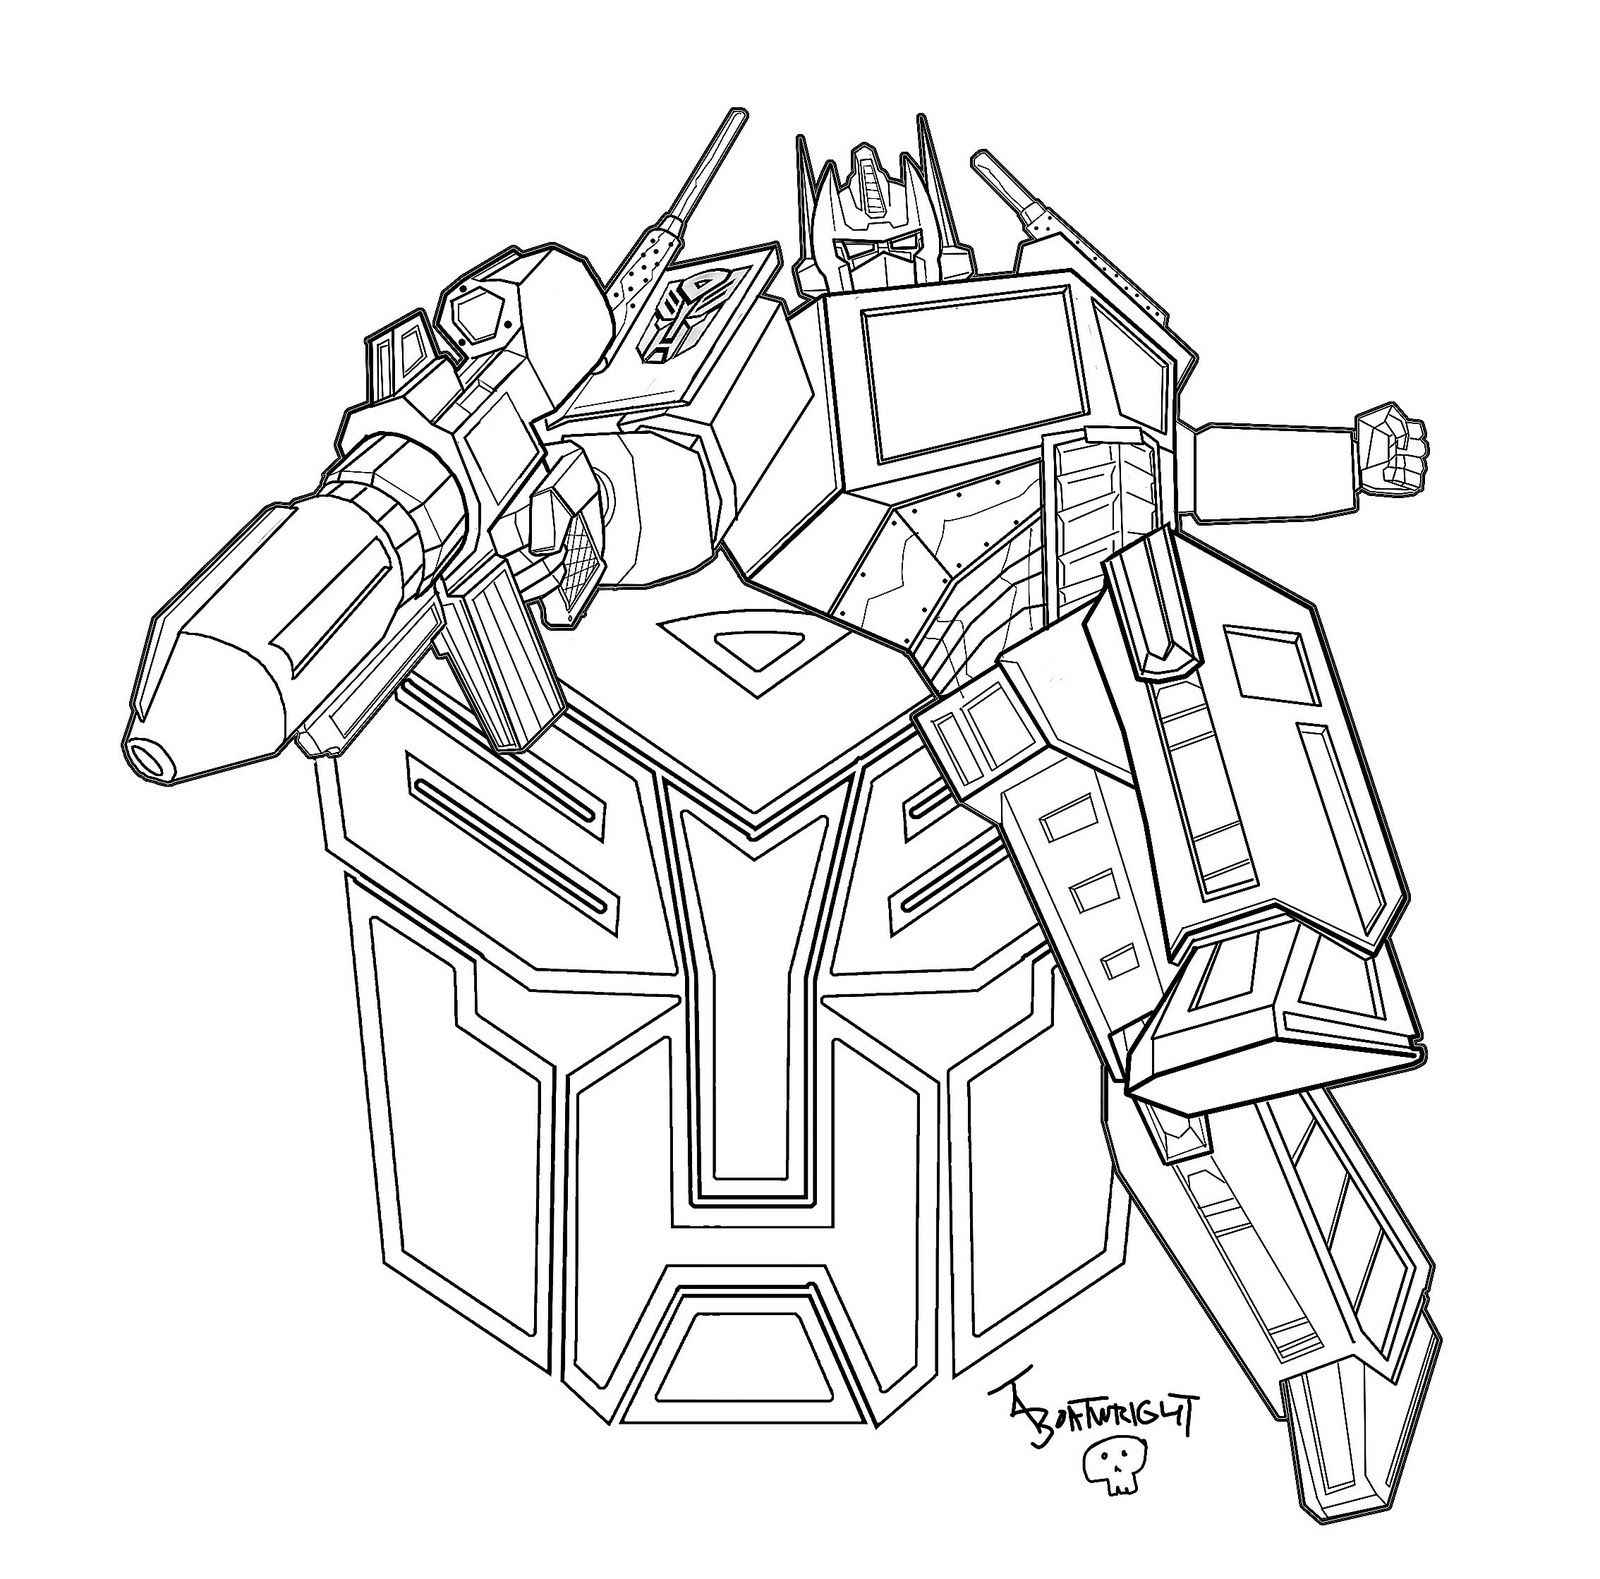 Uncategorized Transformers Coloring Games optimusprimetransformerscoloringpages jpg jpg